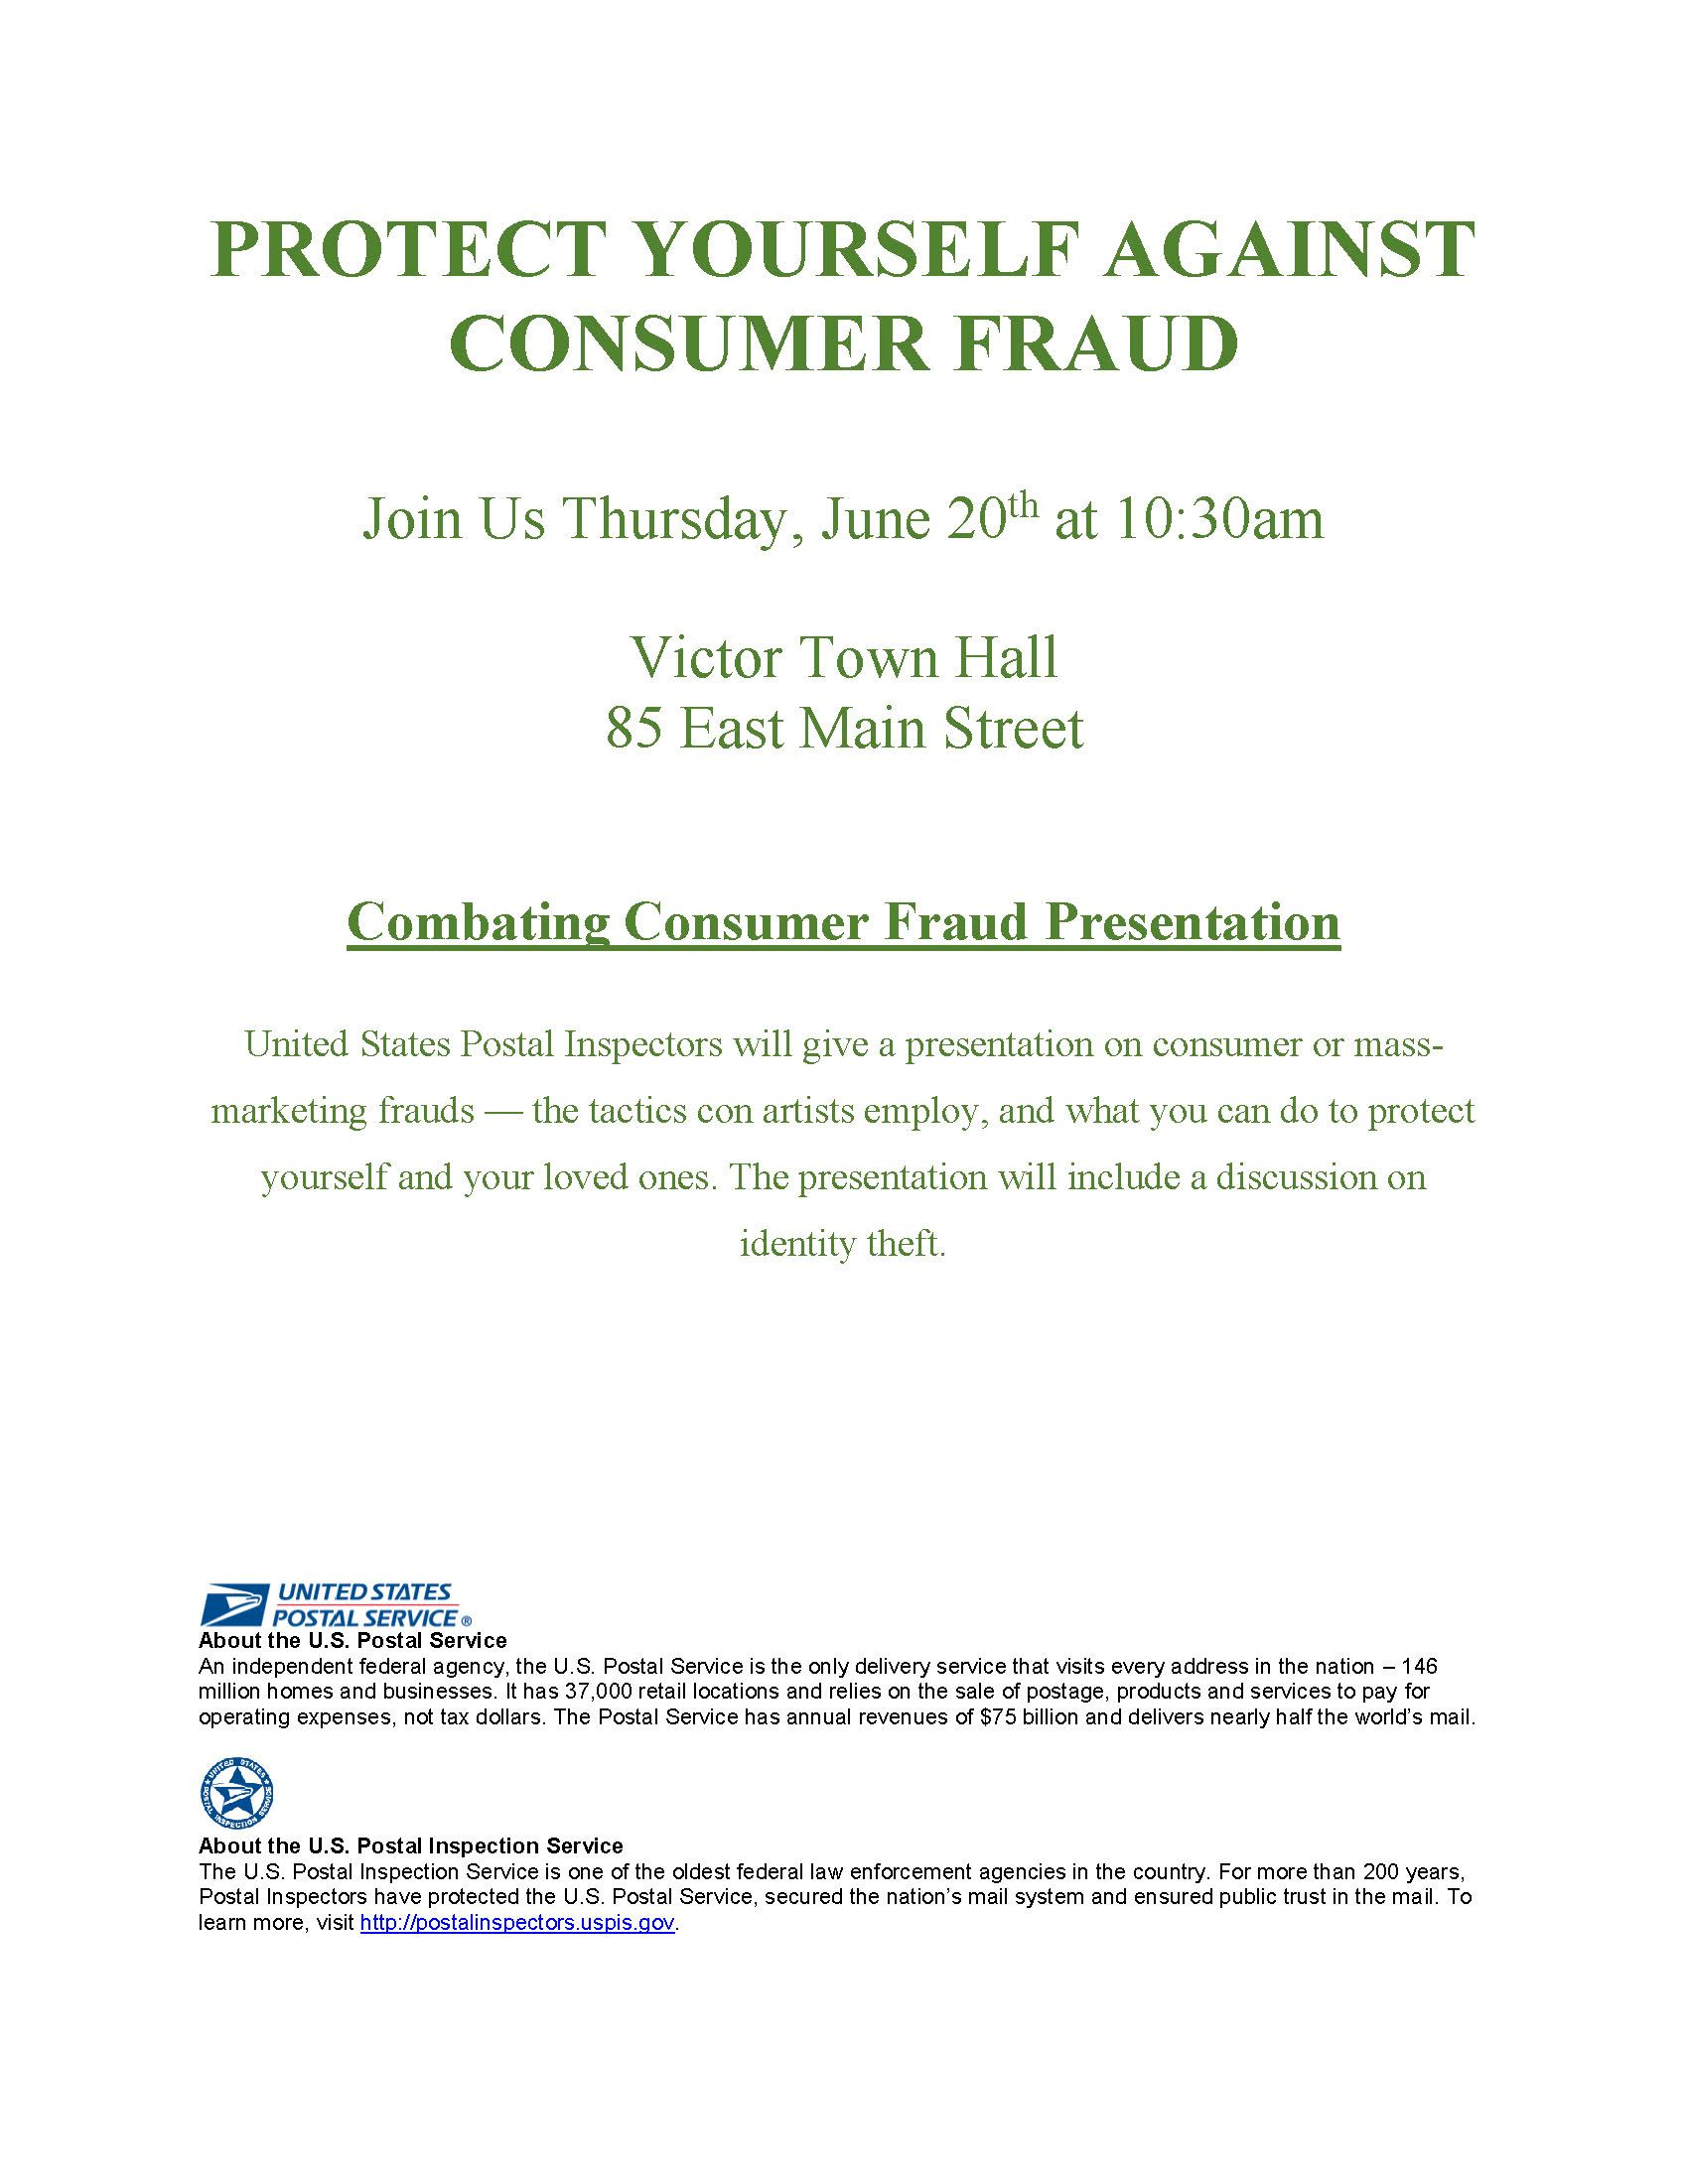 Combating Consumer Fraud flyer woth US Postal Service logo and US Postal Inspection Service logo